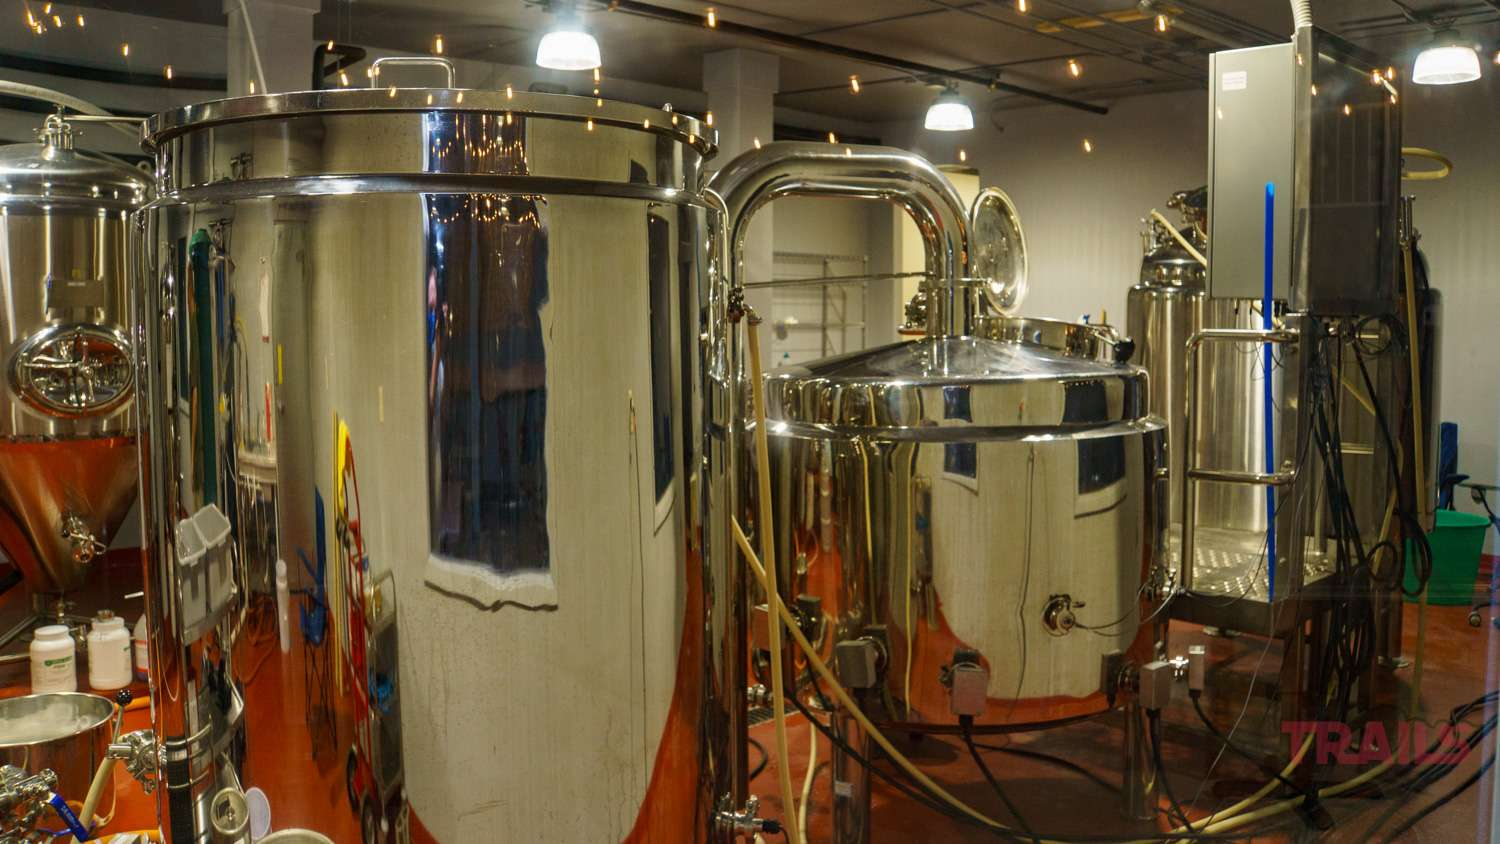 Stainless Steel brewing tanks